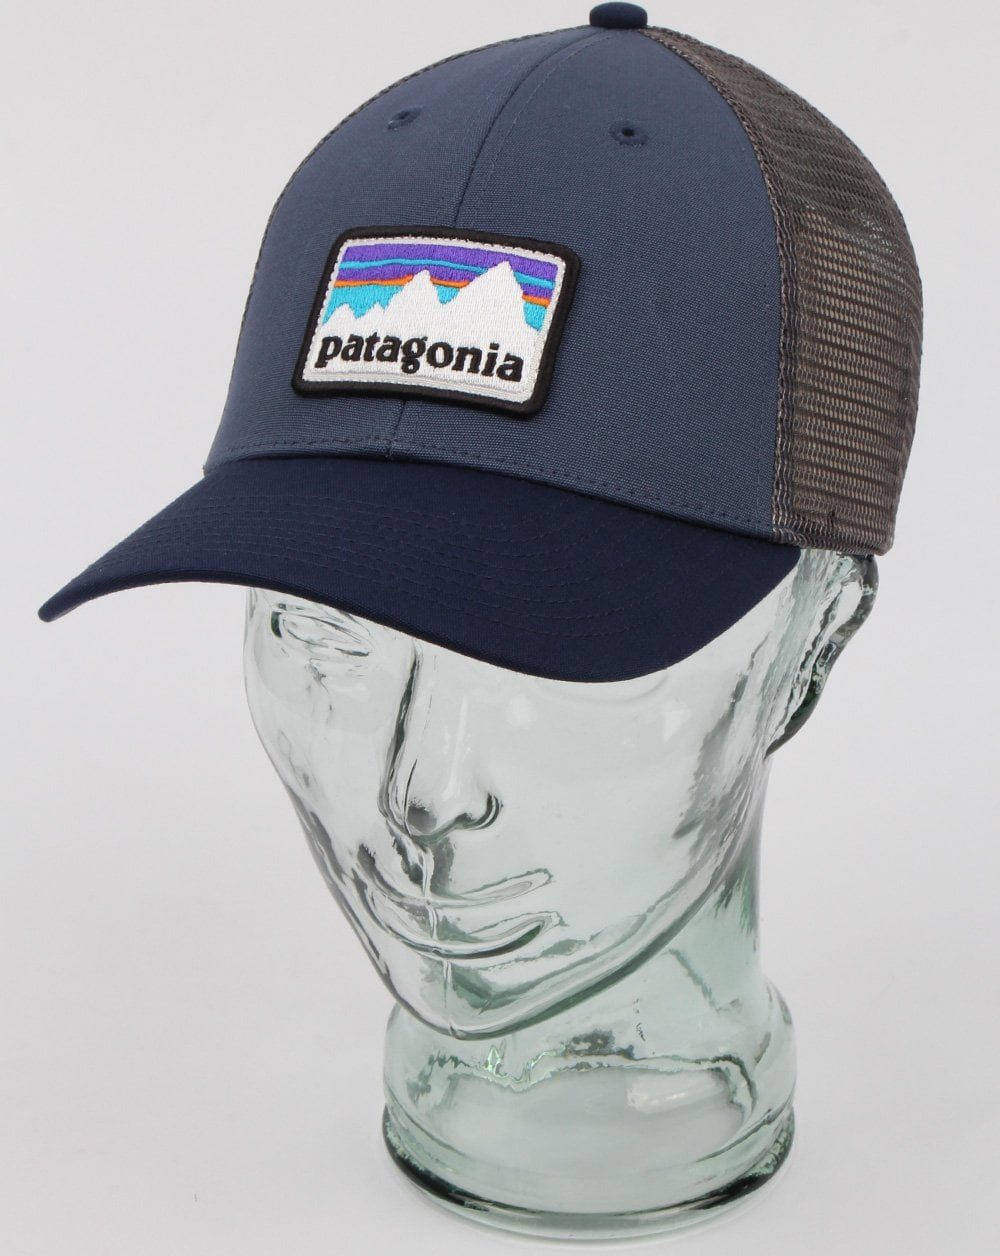 ffa39c99c04 Patagonia Patagonia Shop Sticker Patch Lopro Trucker Hat Blue